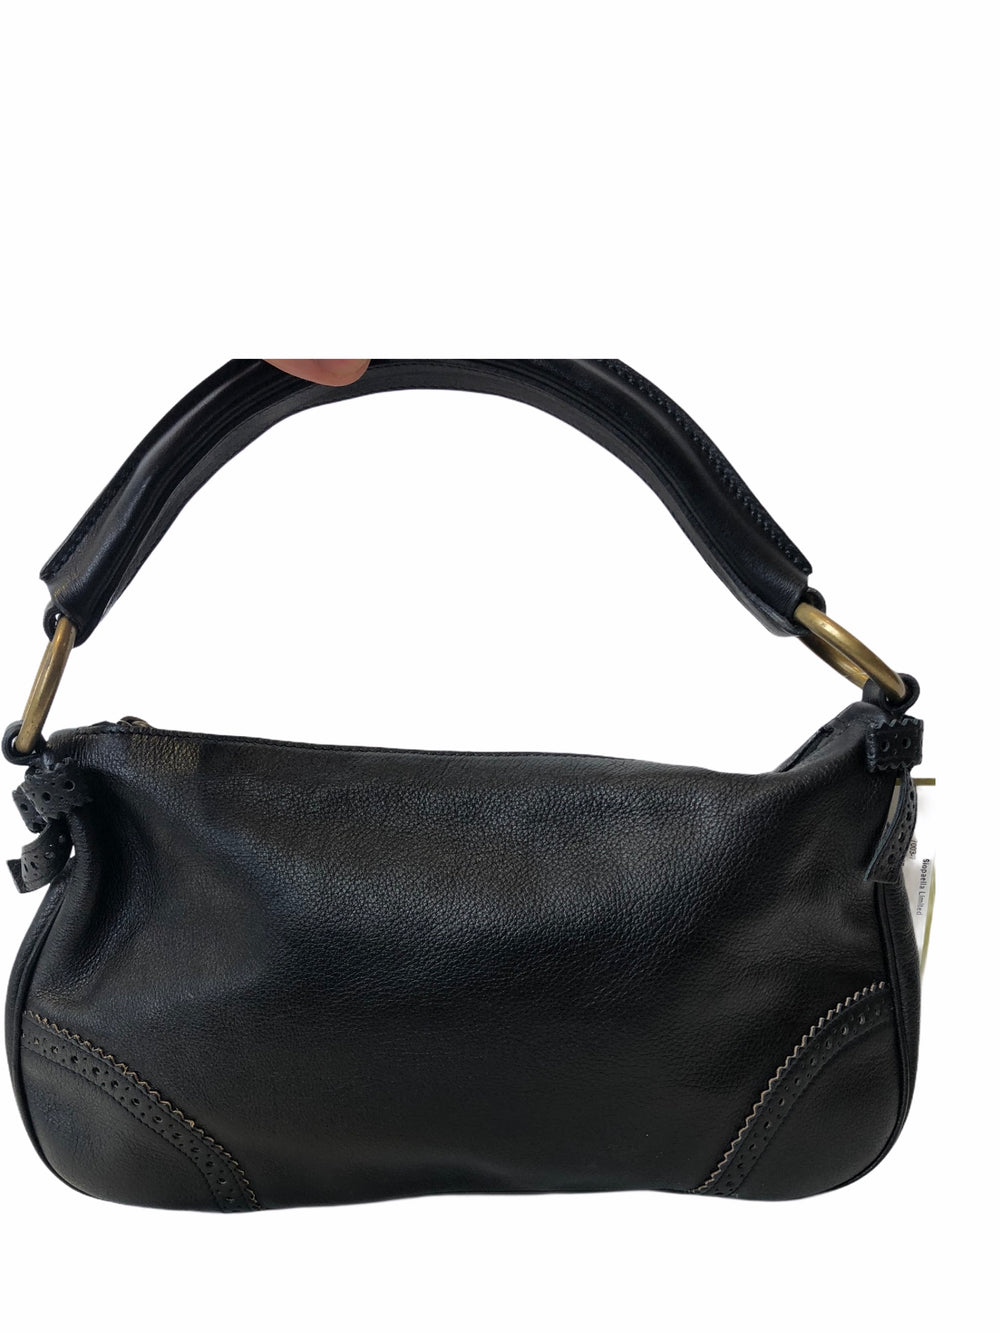 Miu Miu Black Leather Shoulder Bag